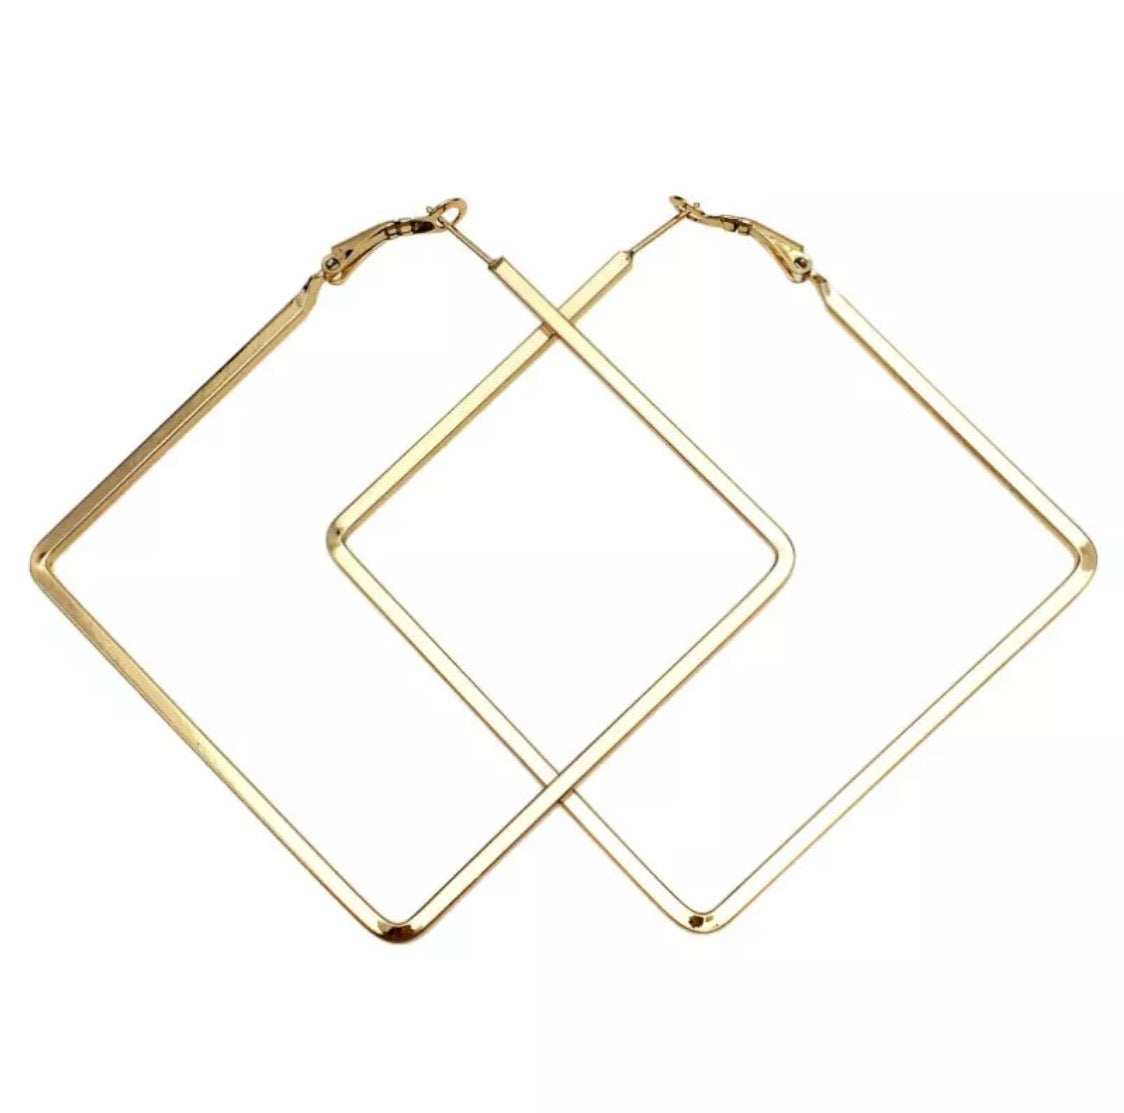 SQUARE HOOP EARRINGS GOLD - Plush Boutique